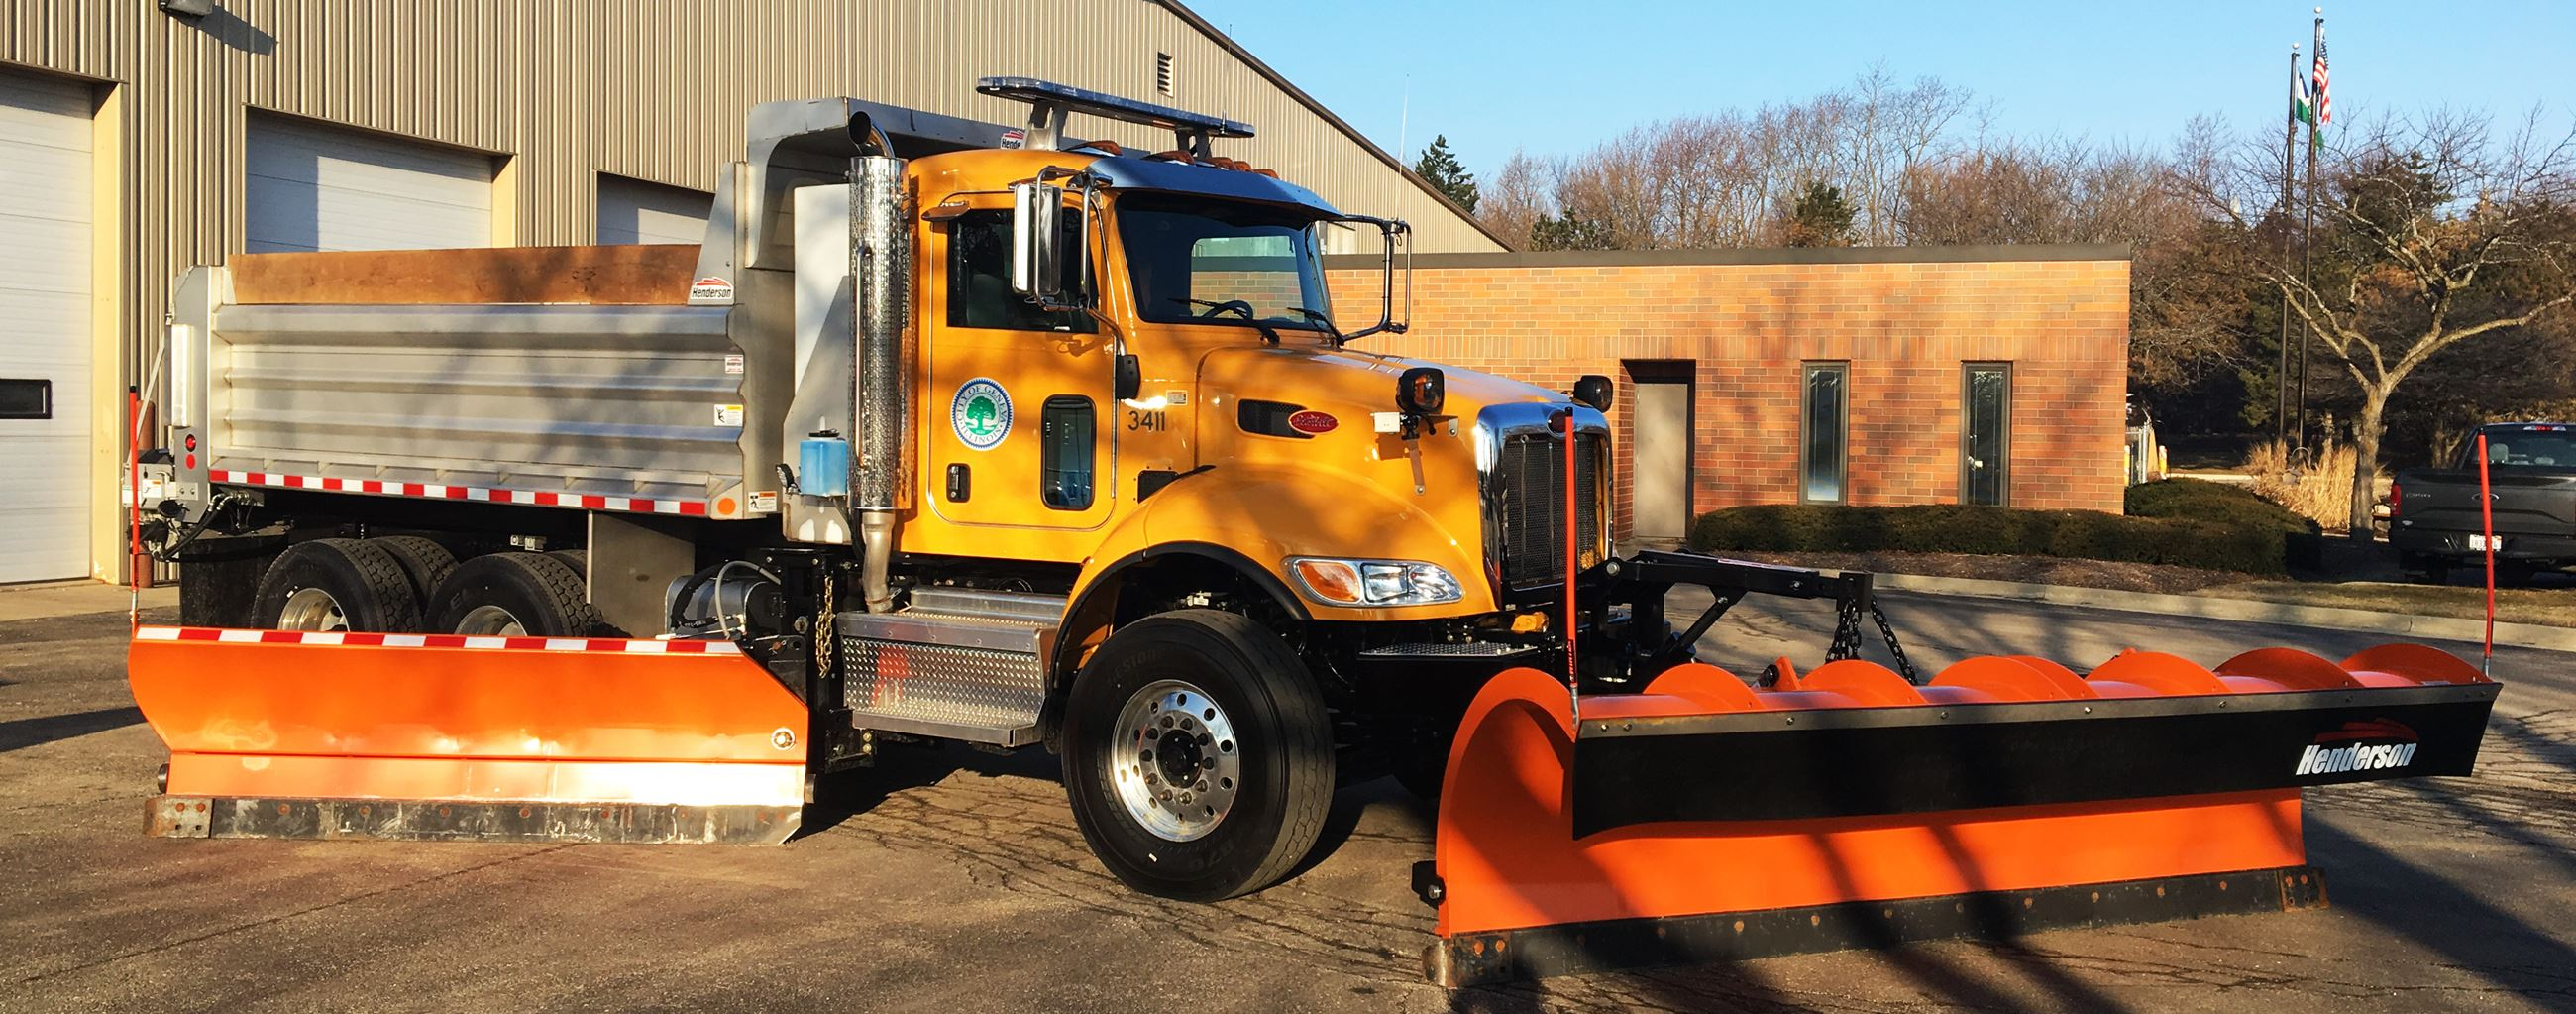 Public Works Dump Truck Snow Plow